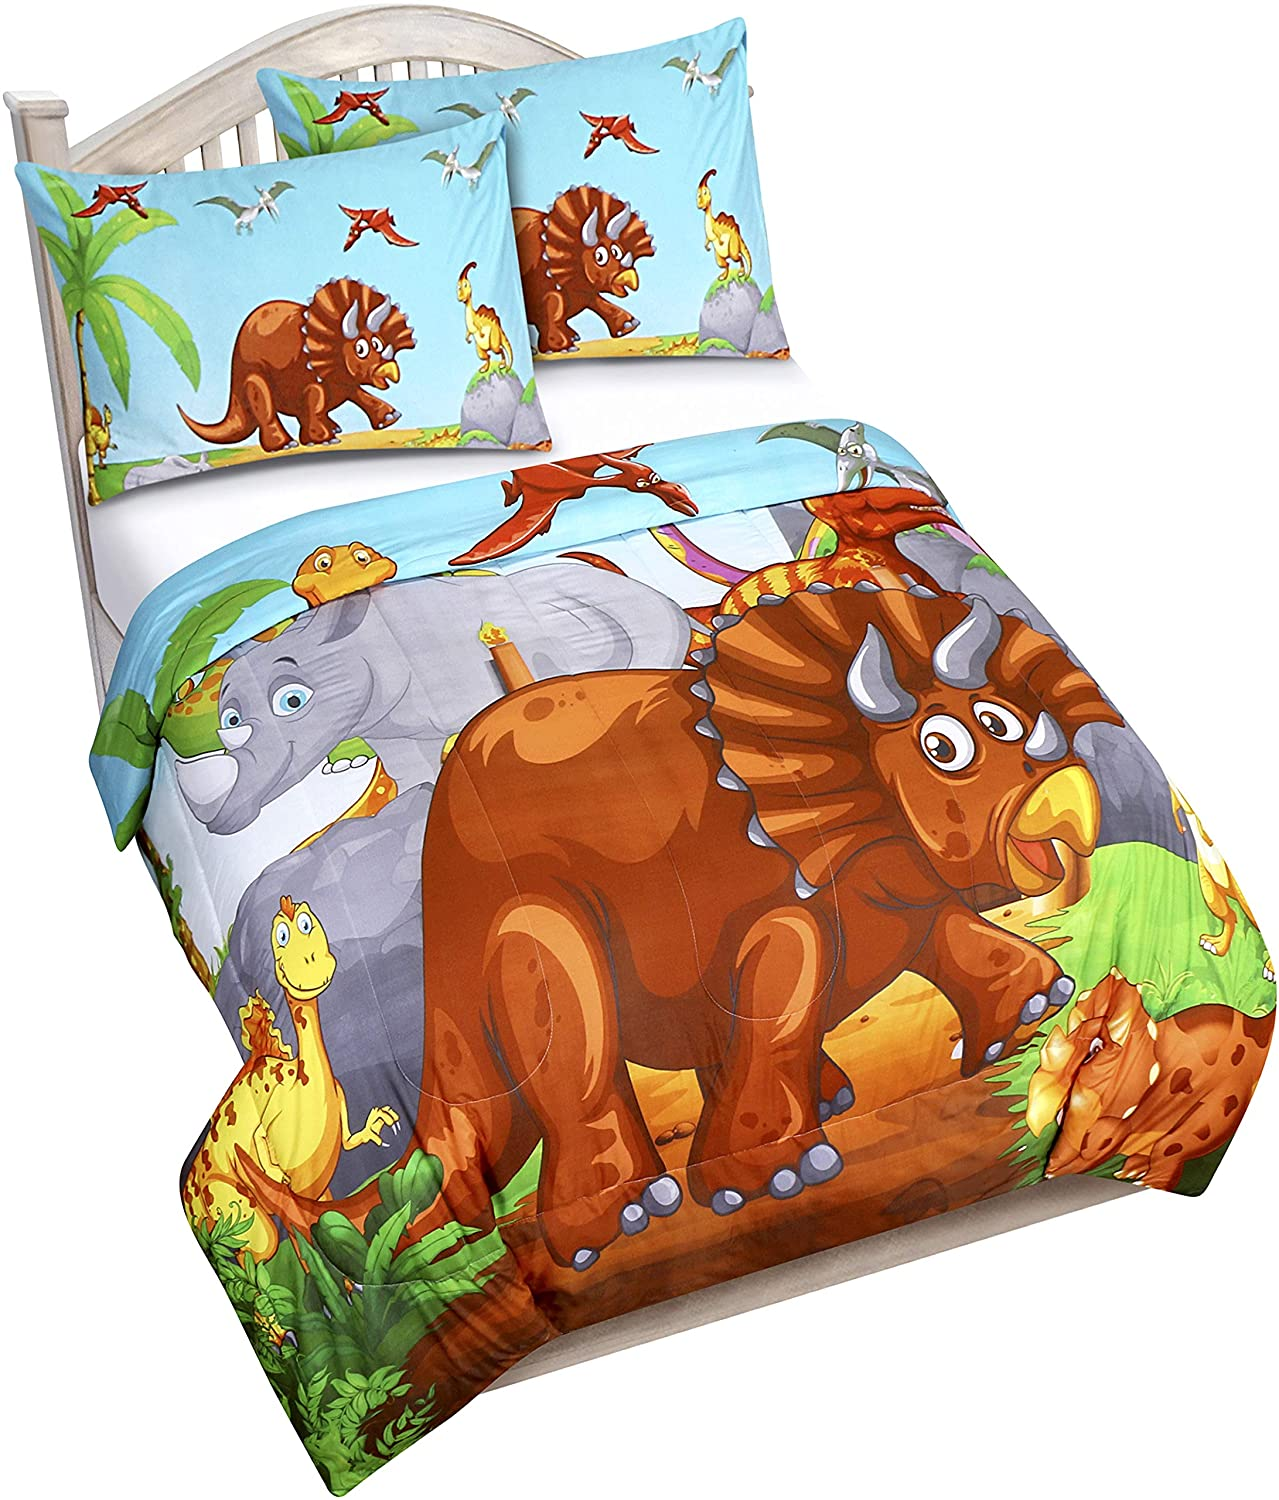 Utopia Bedding All Season Dinosaur Comforter Set - 3 Piece Brushed Microfiber Kids Bedding Set - Twin/Twin XL